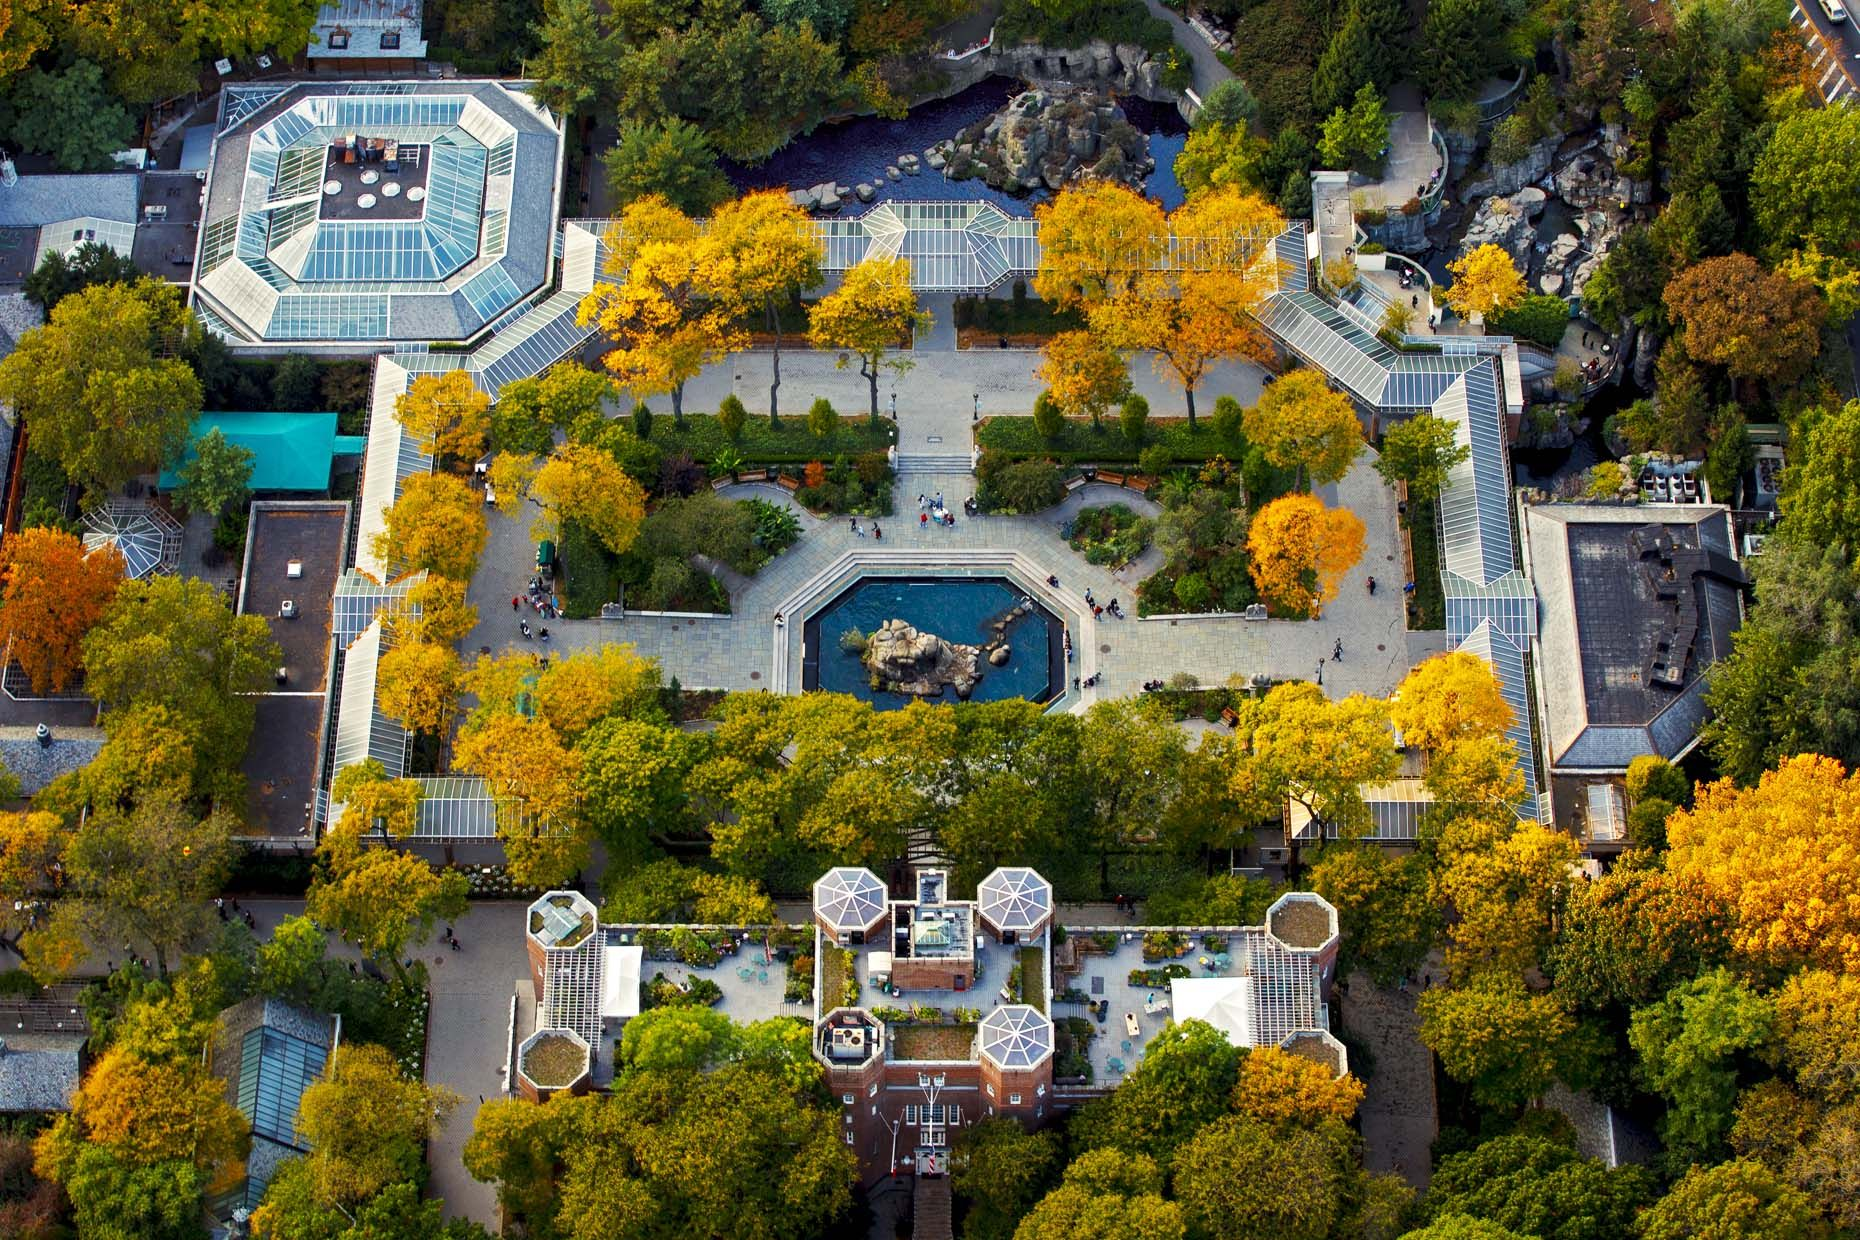 Central Park New York Zoo Pictures Wallpaper